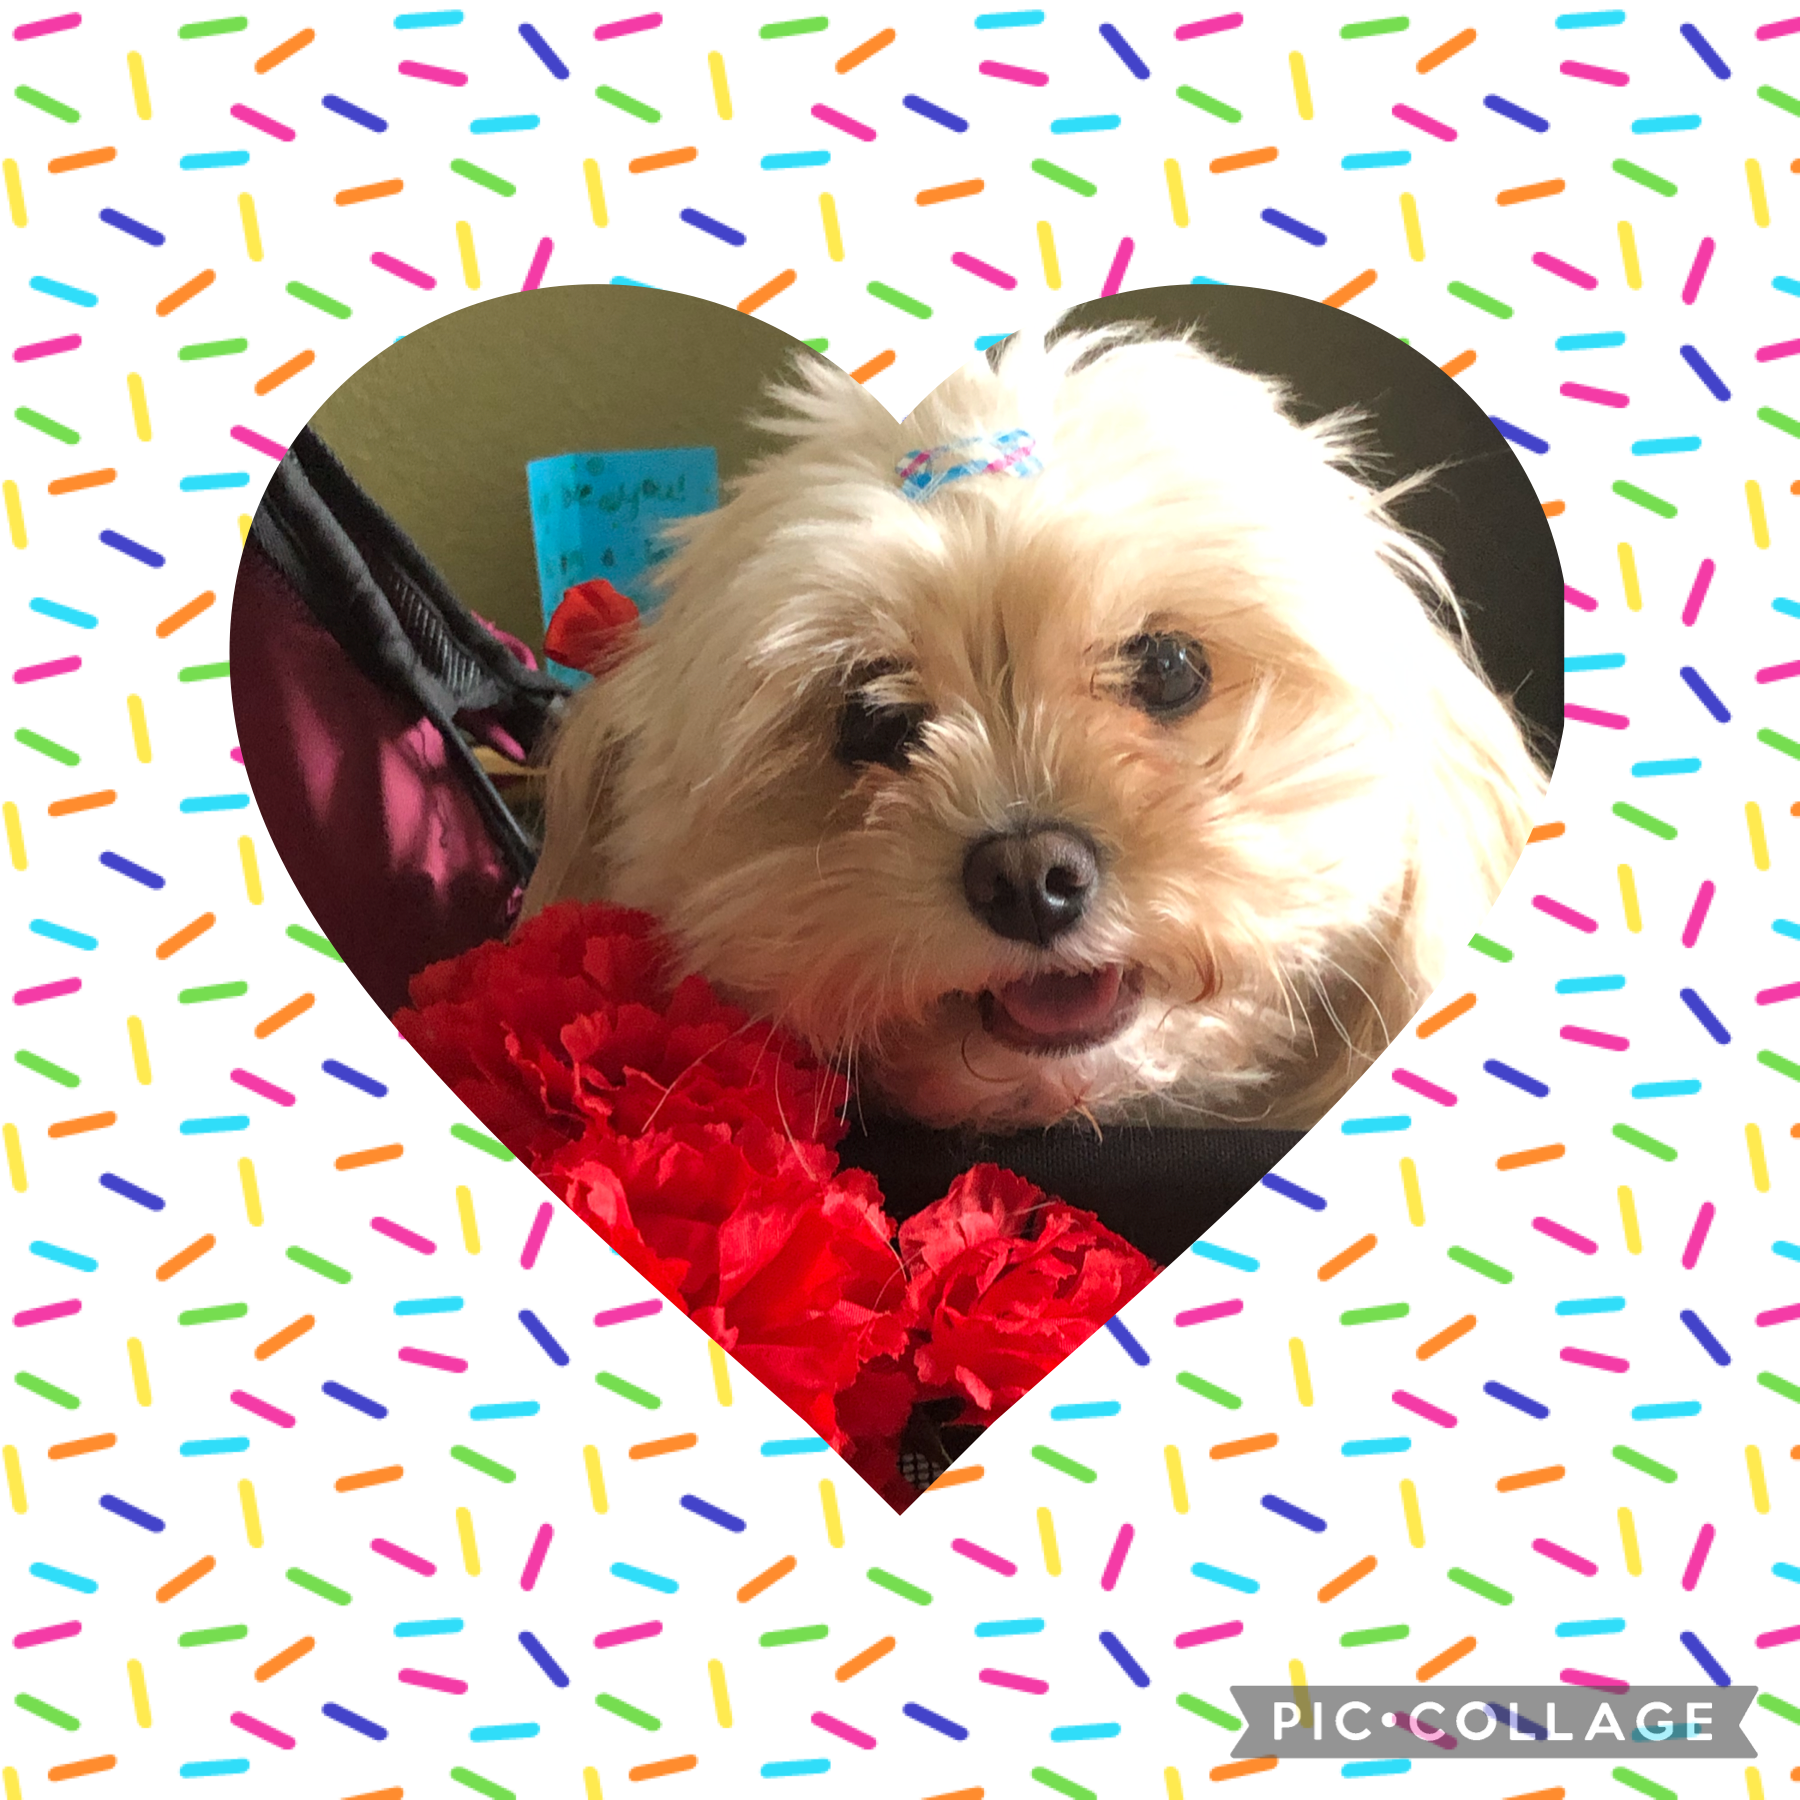 This is Callie my dads dog. She's in her doggie stroller with some fake flowers that she likes the nibble on😆